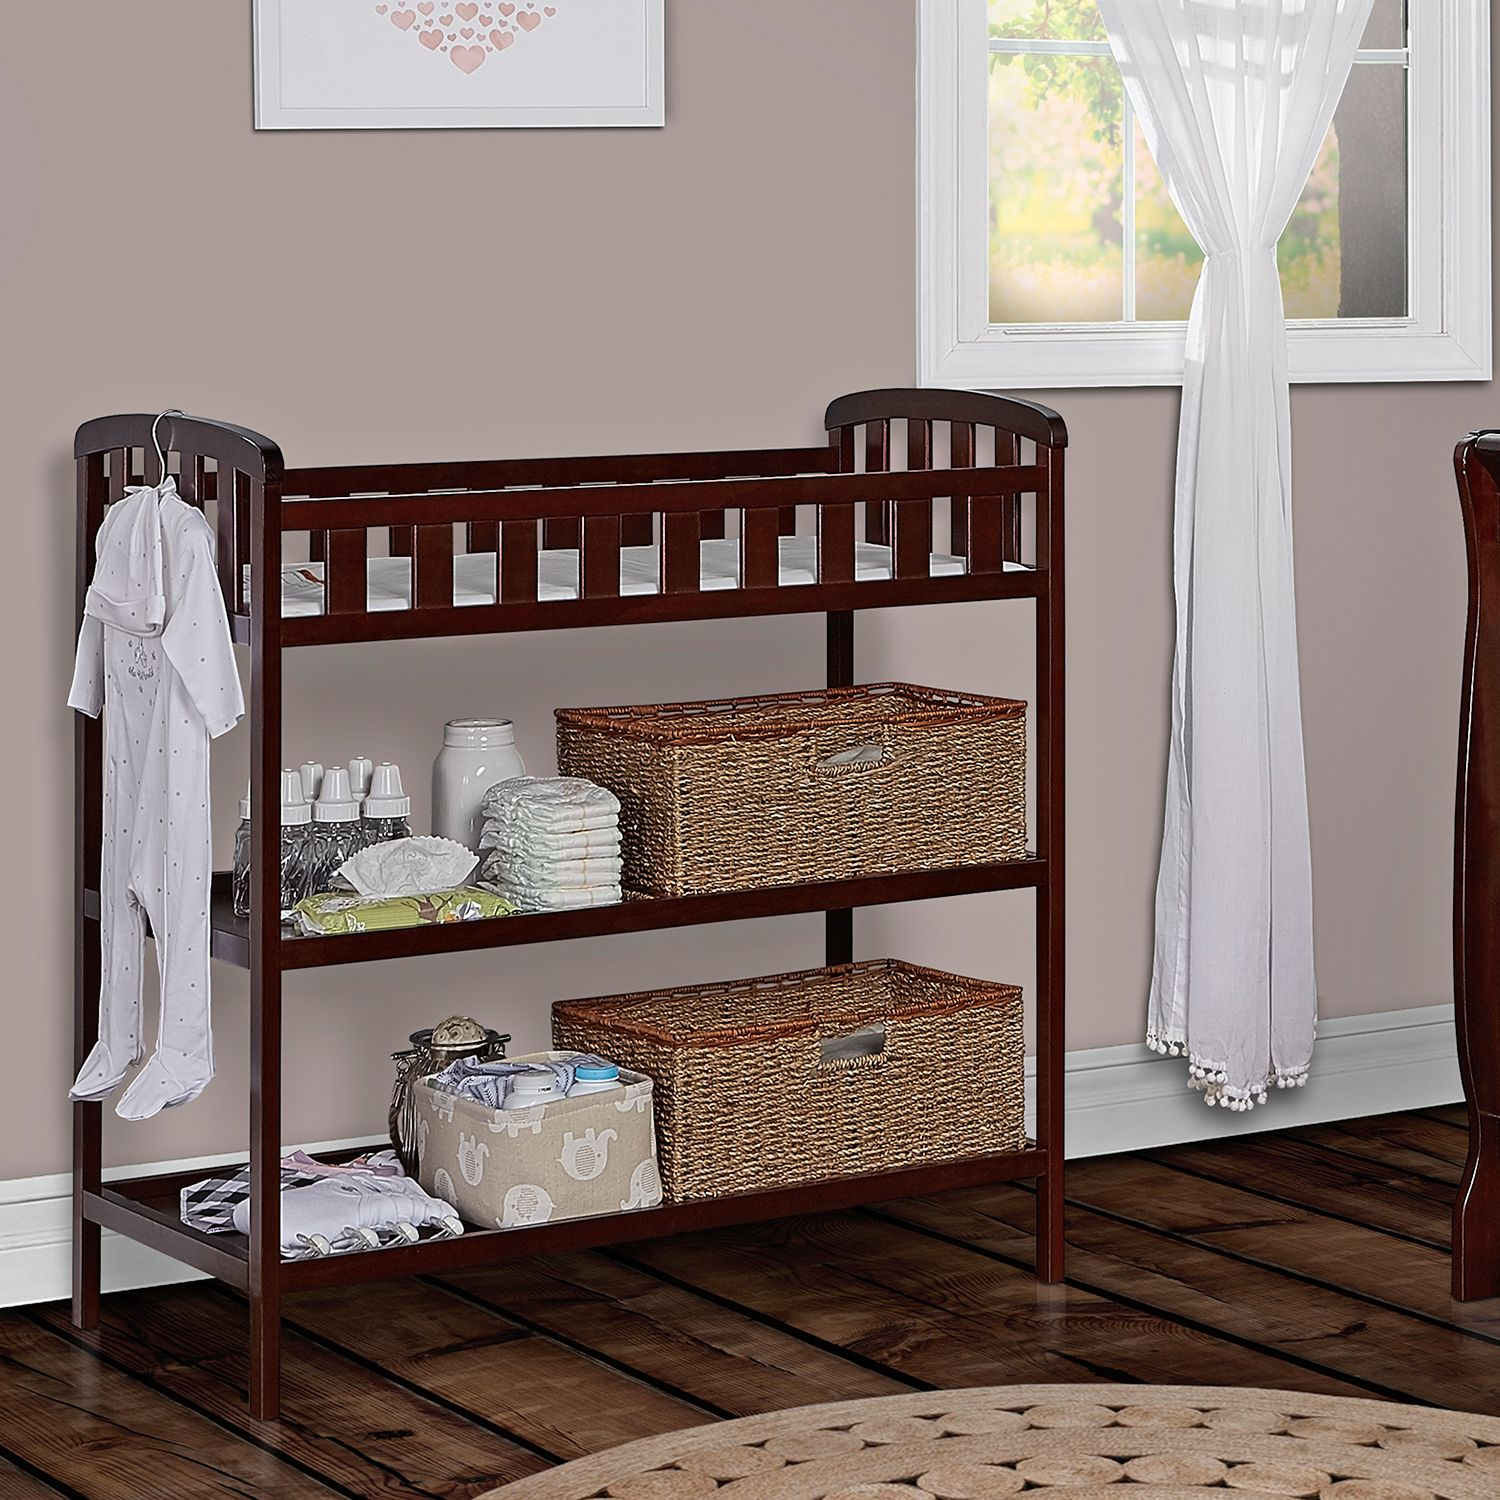 Regular. $89.99. Dream On Me Emily Changing Table